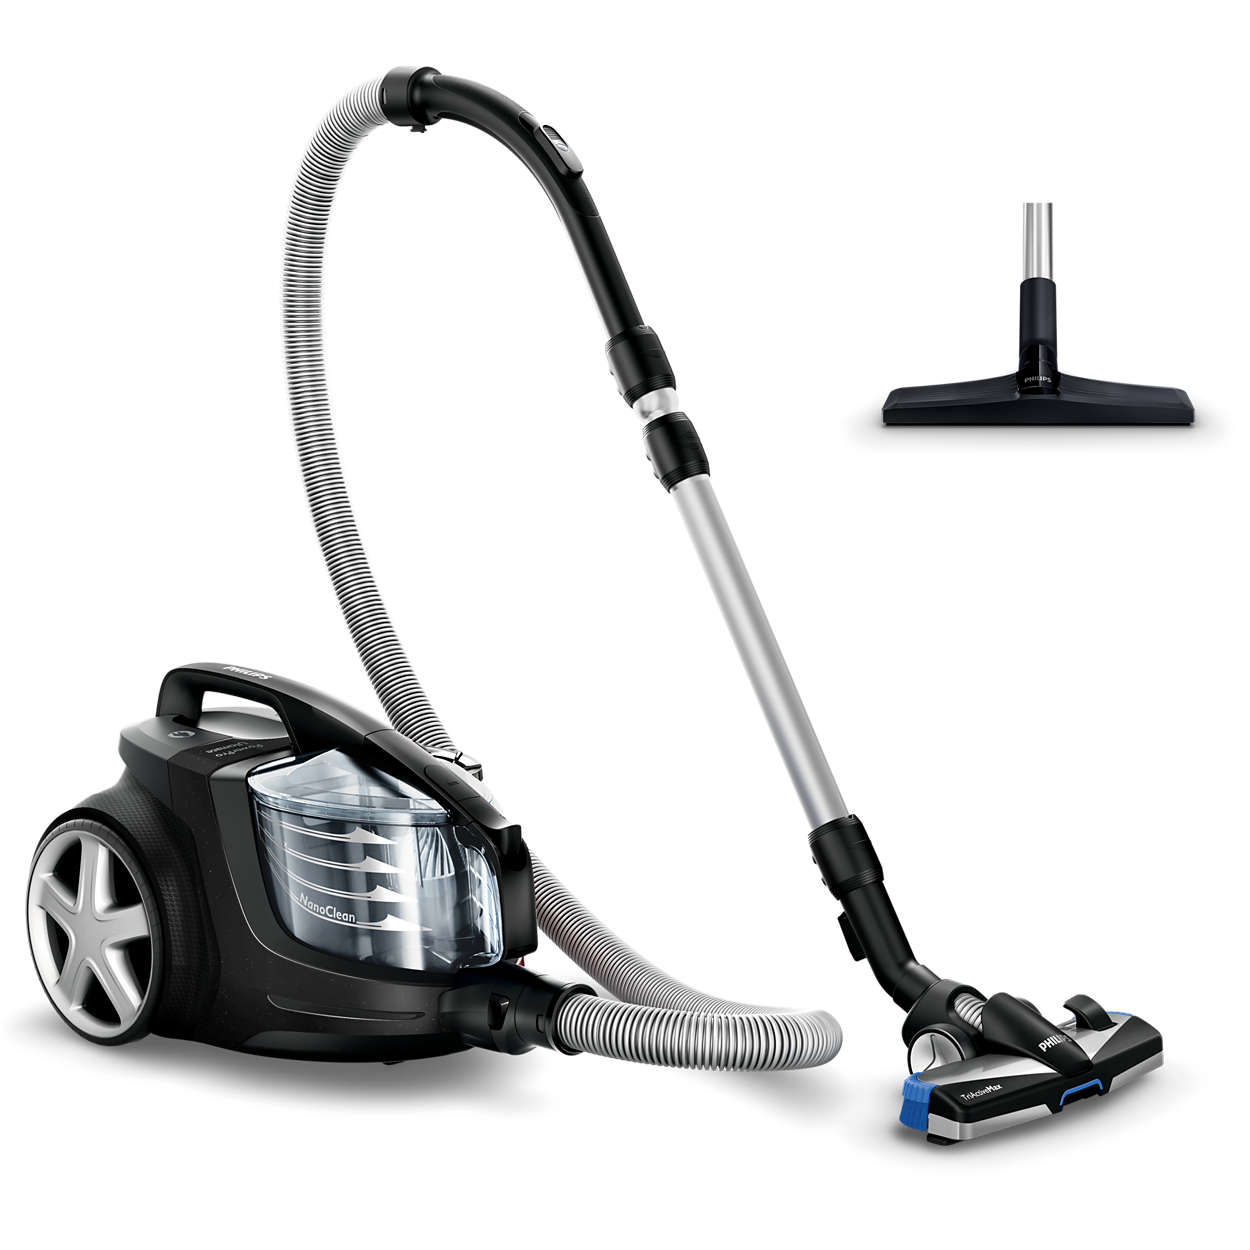 Removes more dust than any 2400-W vacuum cleaner*